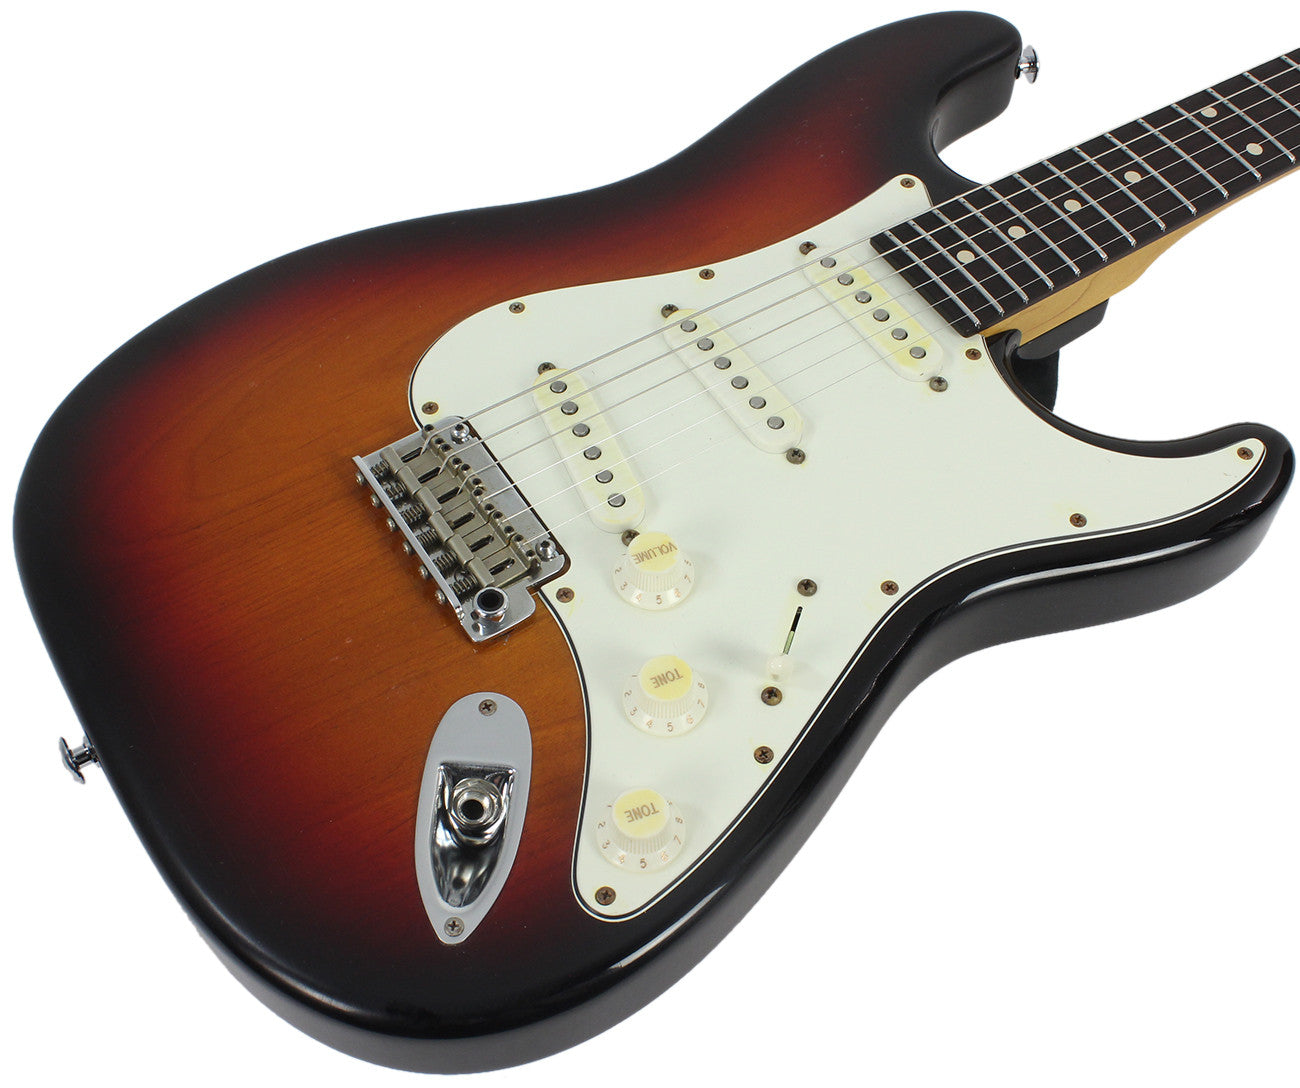 Suhr Classic Antique Guitar - 3 Tone Burst, Rosewood Neck, SSS ...